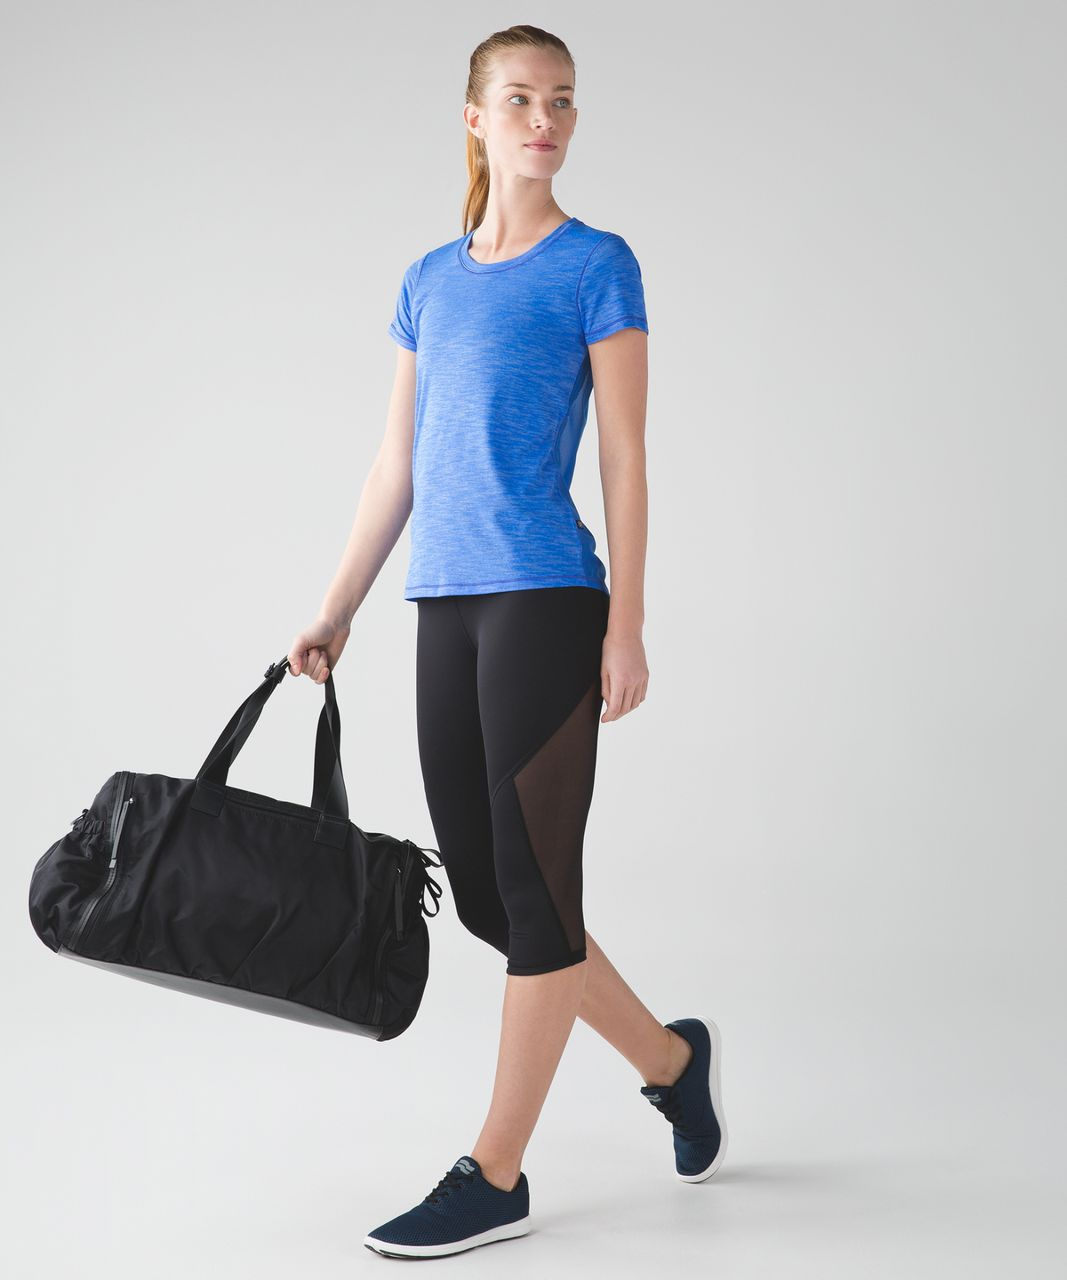 Lululemon Beat The Heat Short Sleeve - Heathered Pipe Dream Blue / Pipe Dream Blue